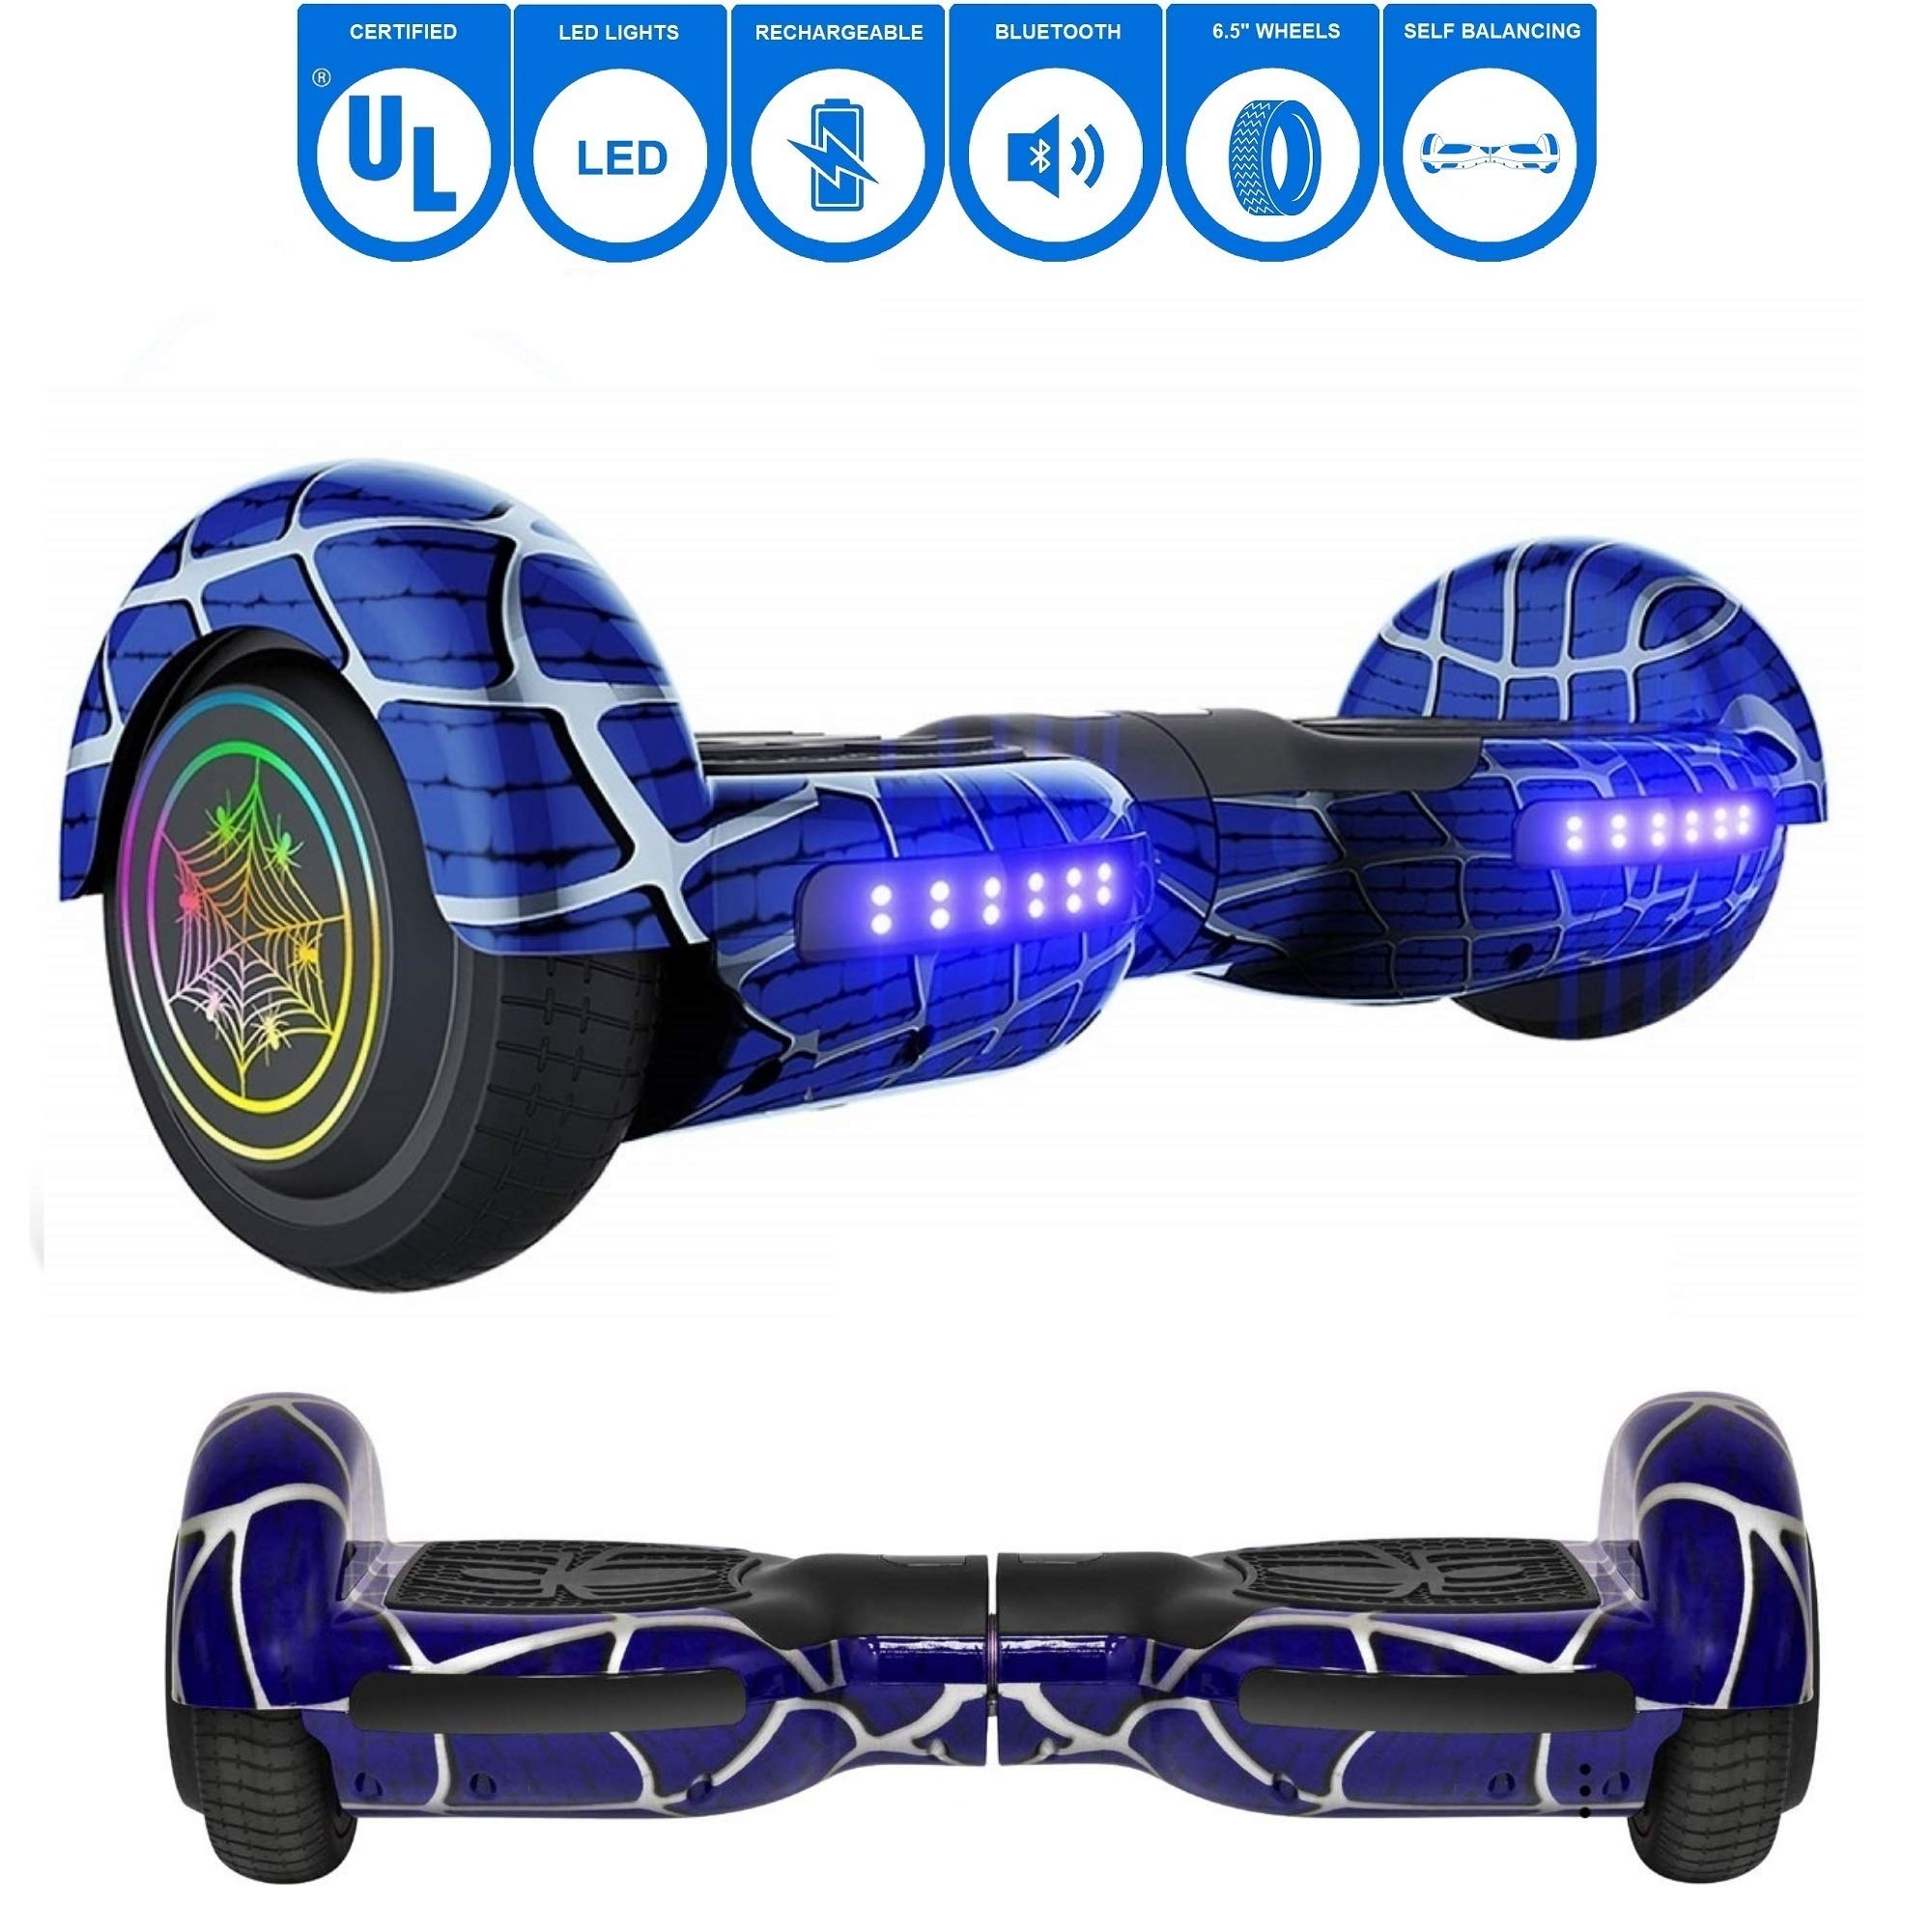 NHT 6.5'' inch Aurora Hoverboard Self Balancing Scooter with Colorful LED Wheels and Lights - UL2272 Certified Carbon Fiber/Spider/Built-in Bluetooth Speaker Available (Spider Blue)